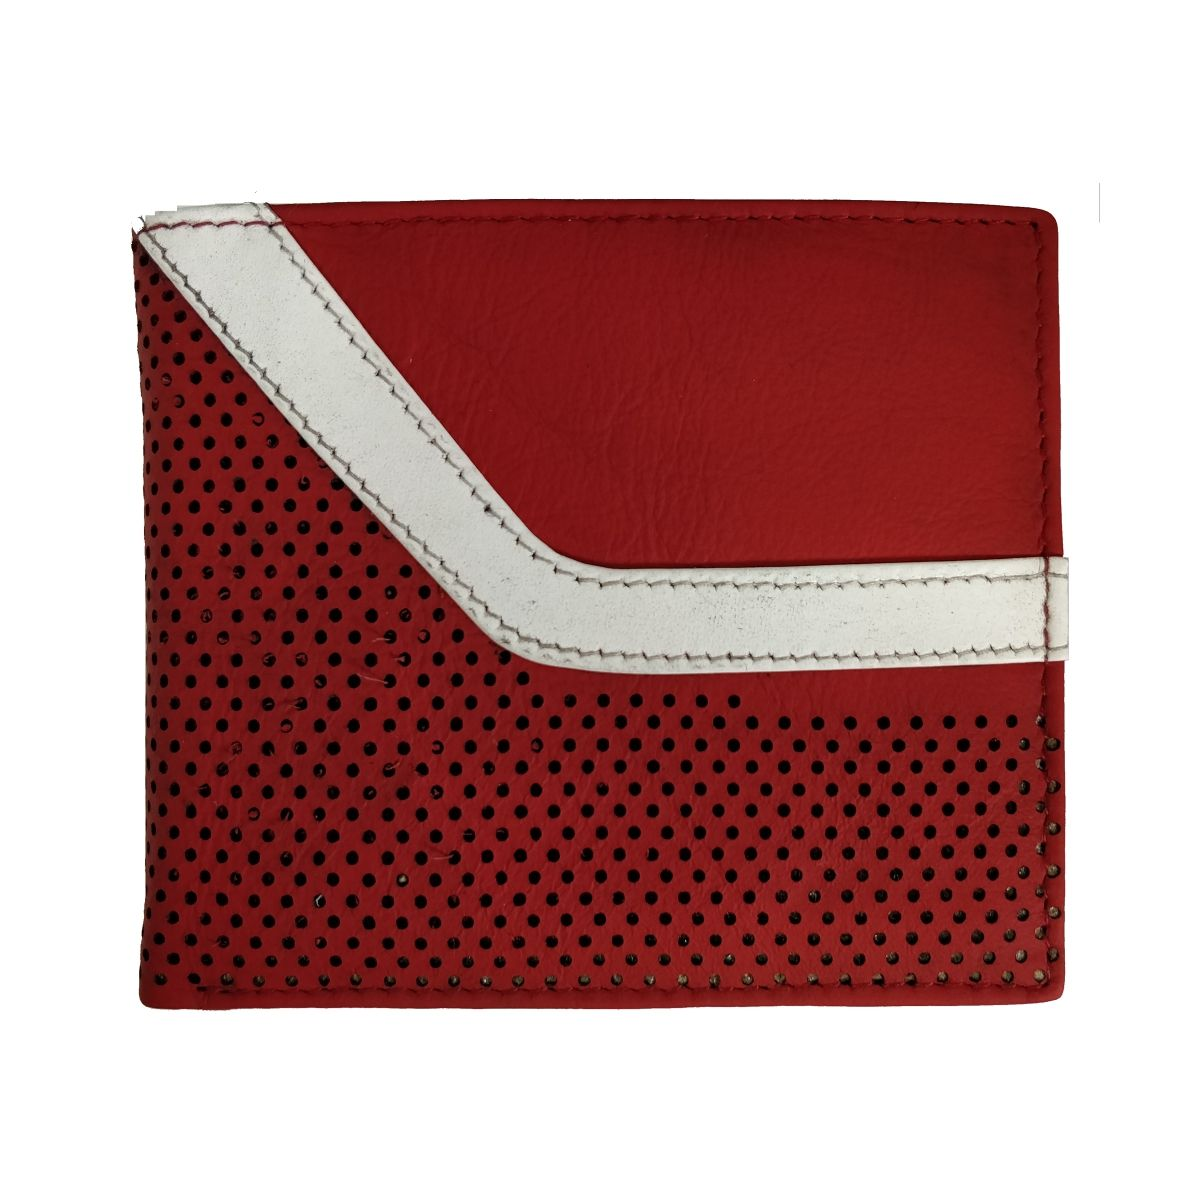 Leather Wallet With Broken Strip and Coin Pouch - Red/White